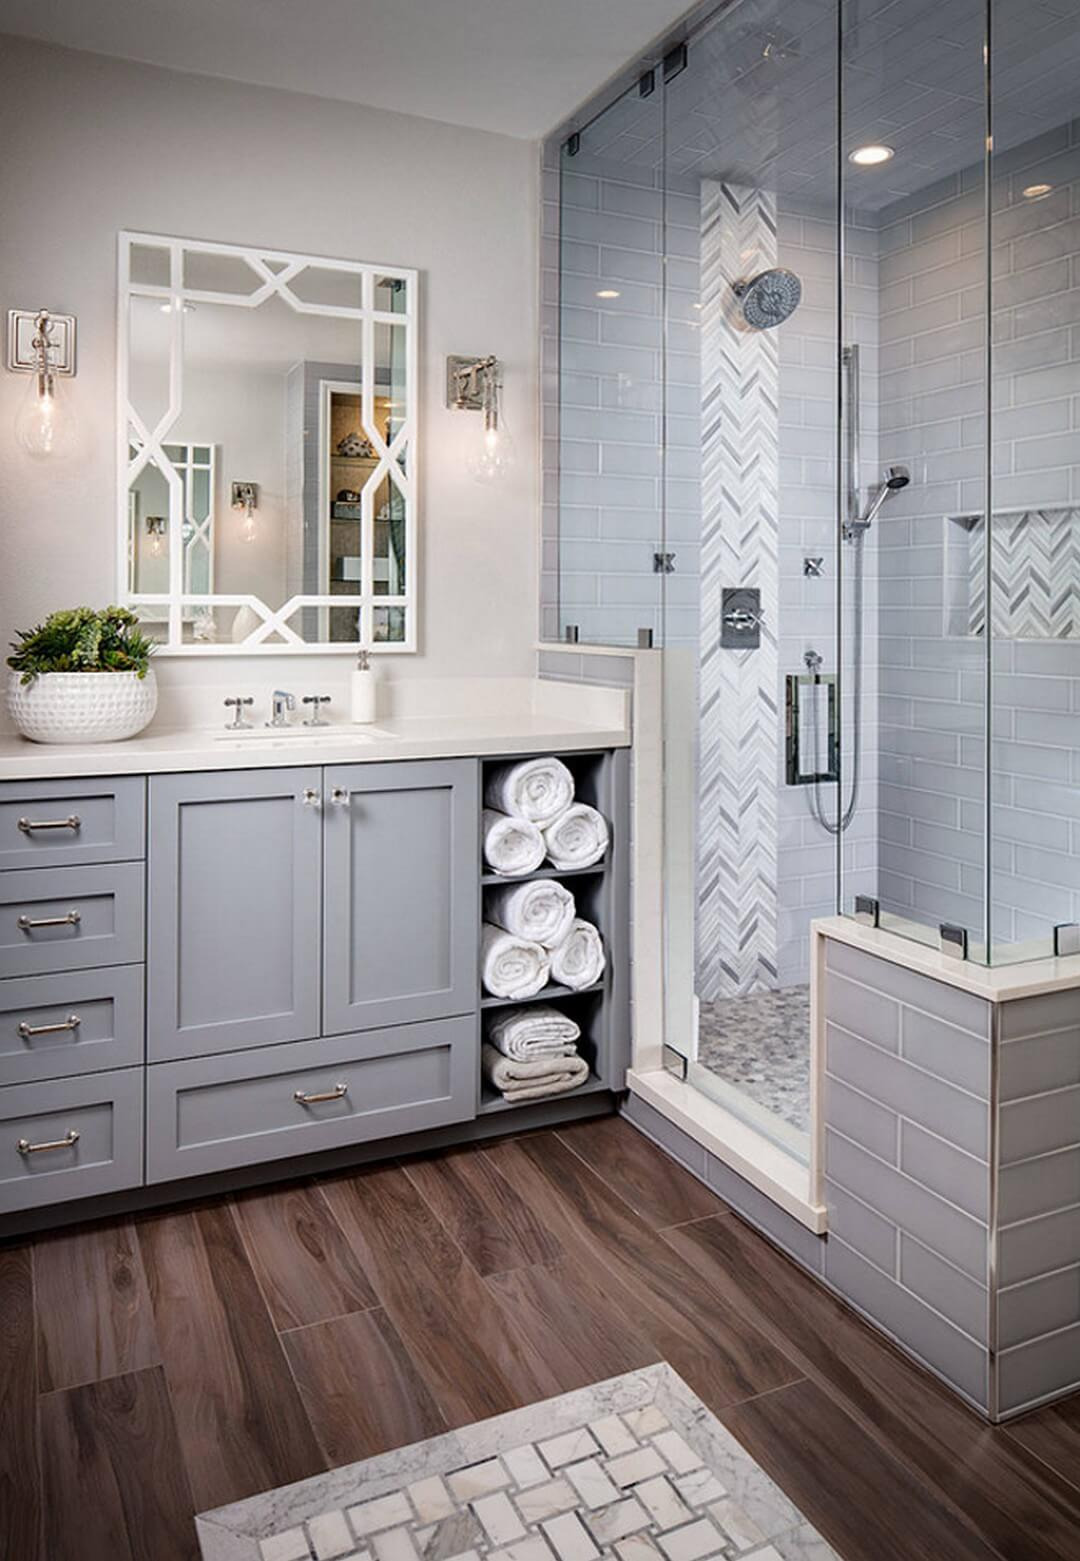 02 master bathroom ideas homebnc